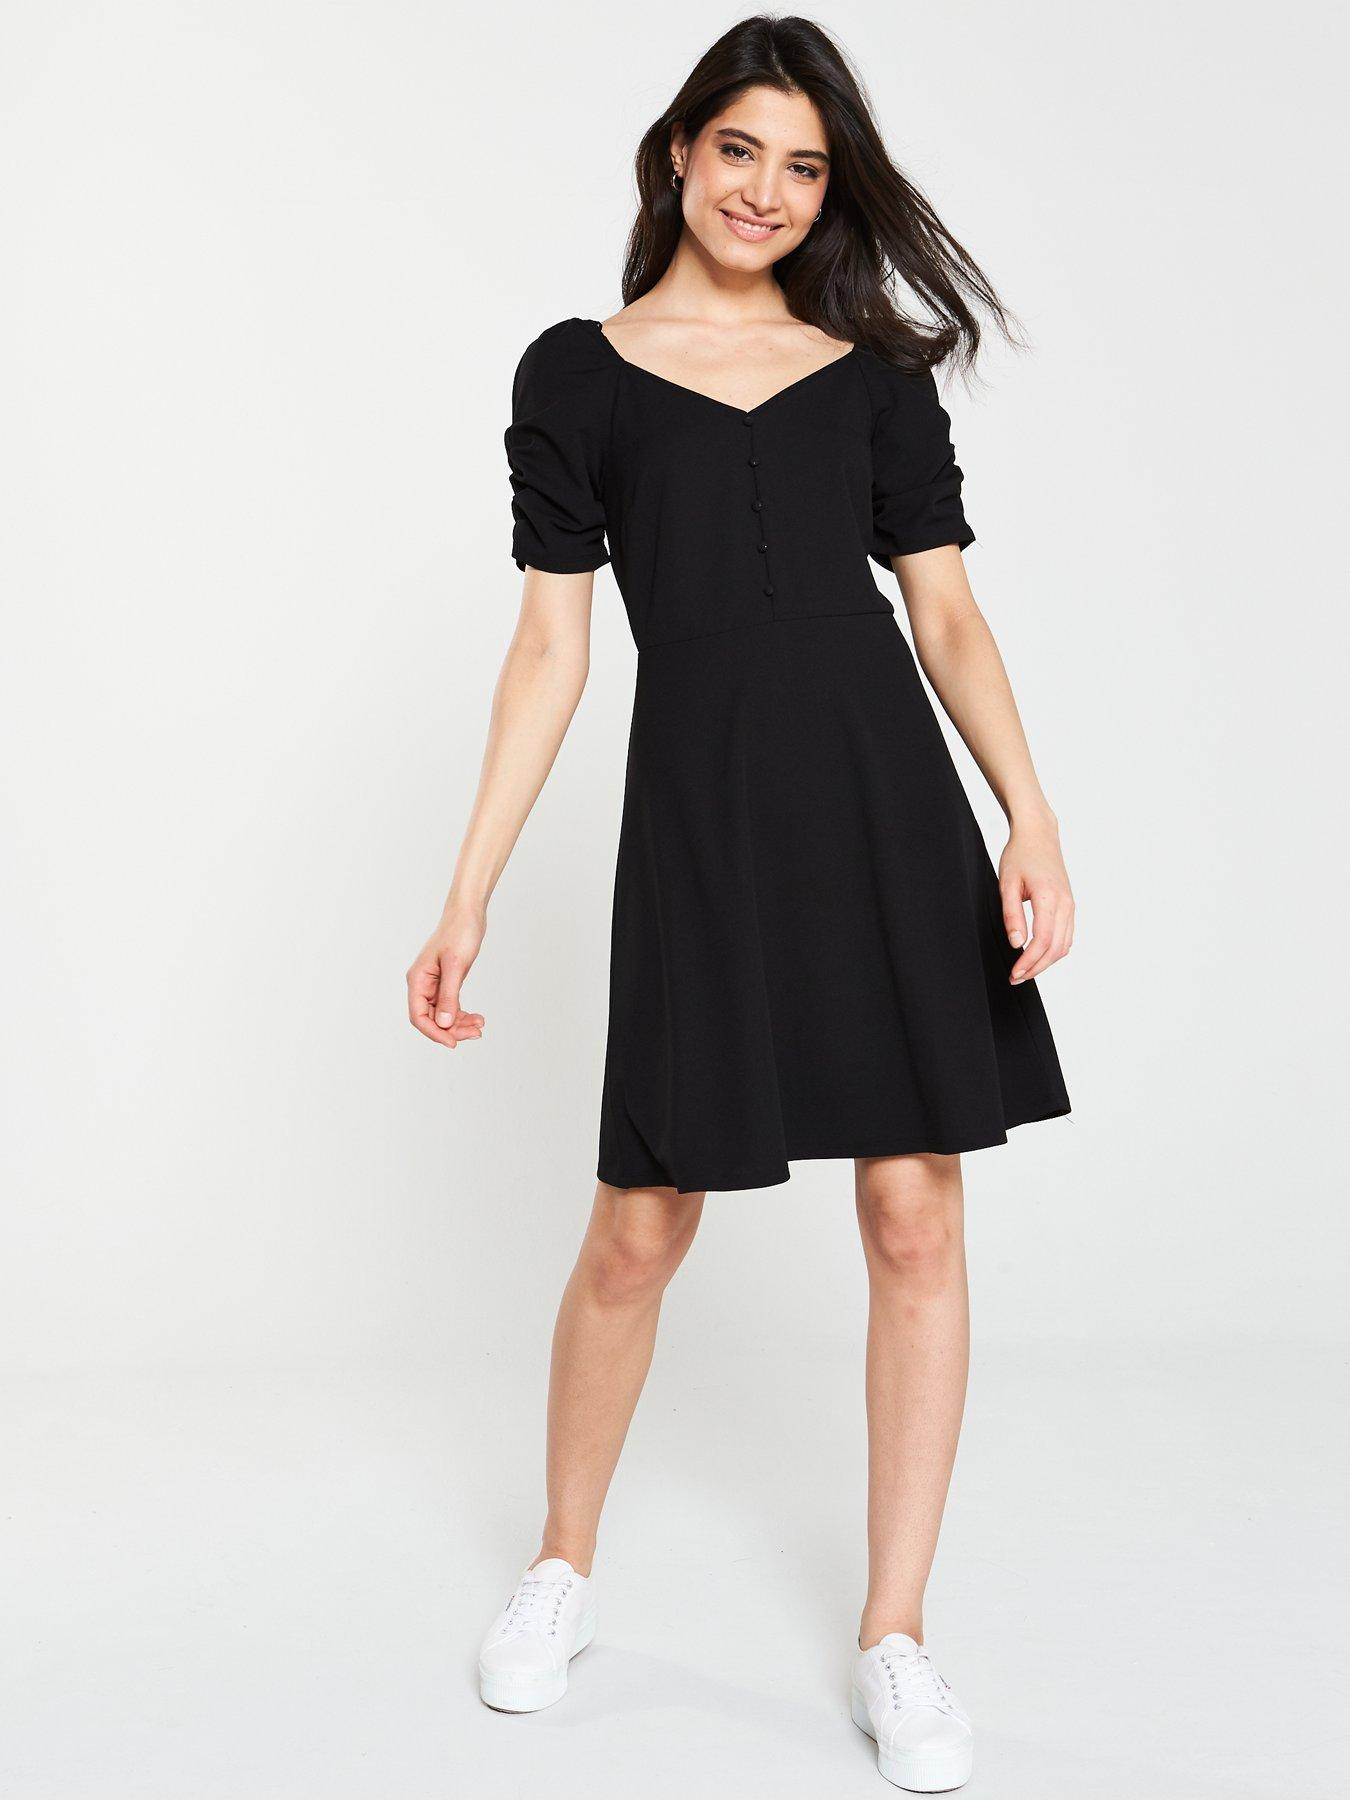 Black co Dress Very uk DressesLittle Rj54LA